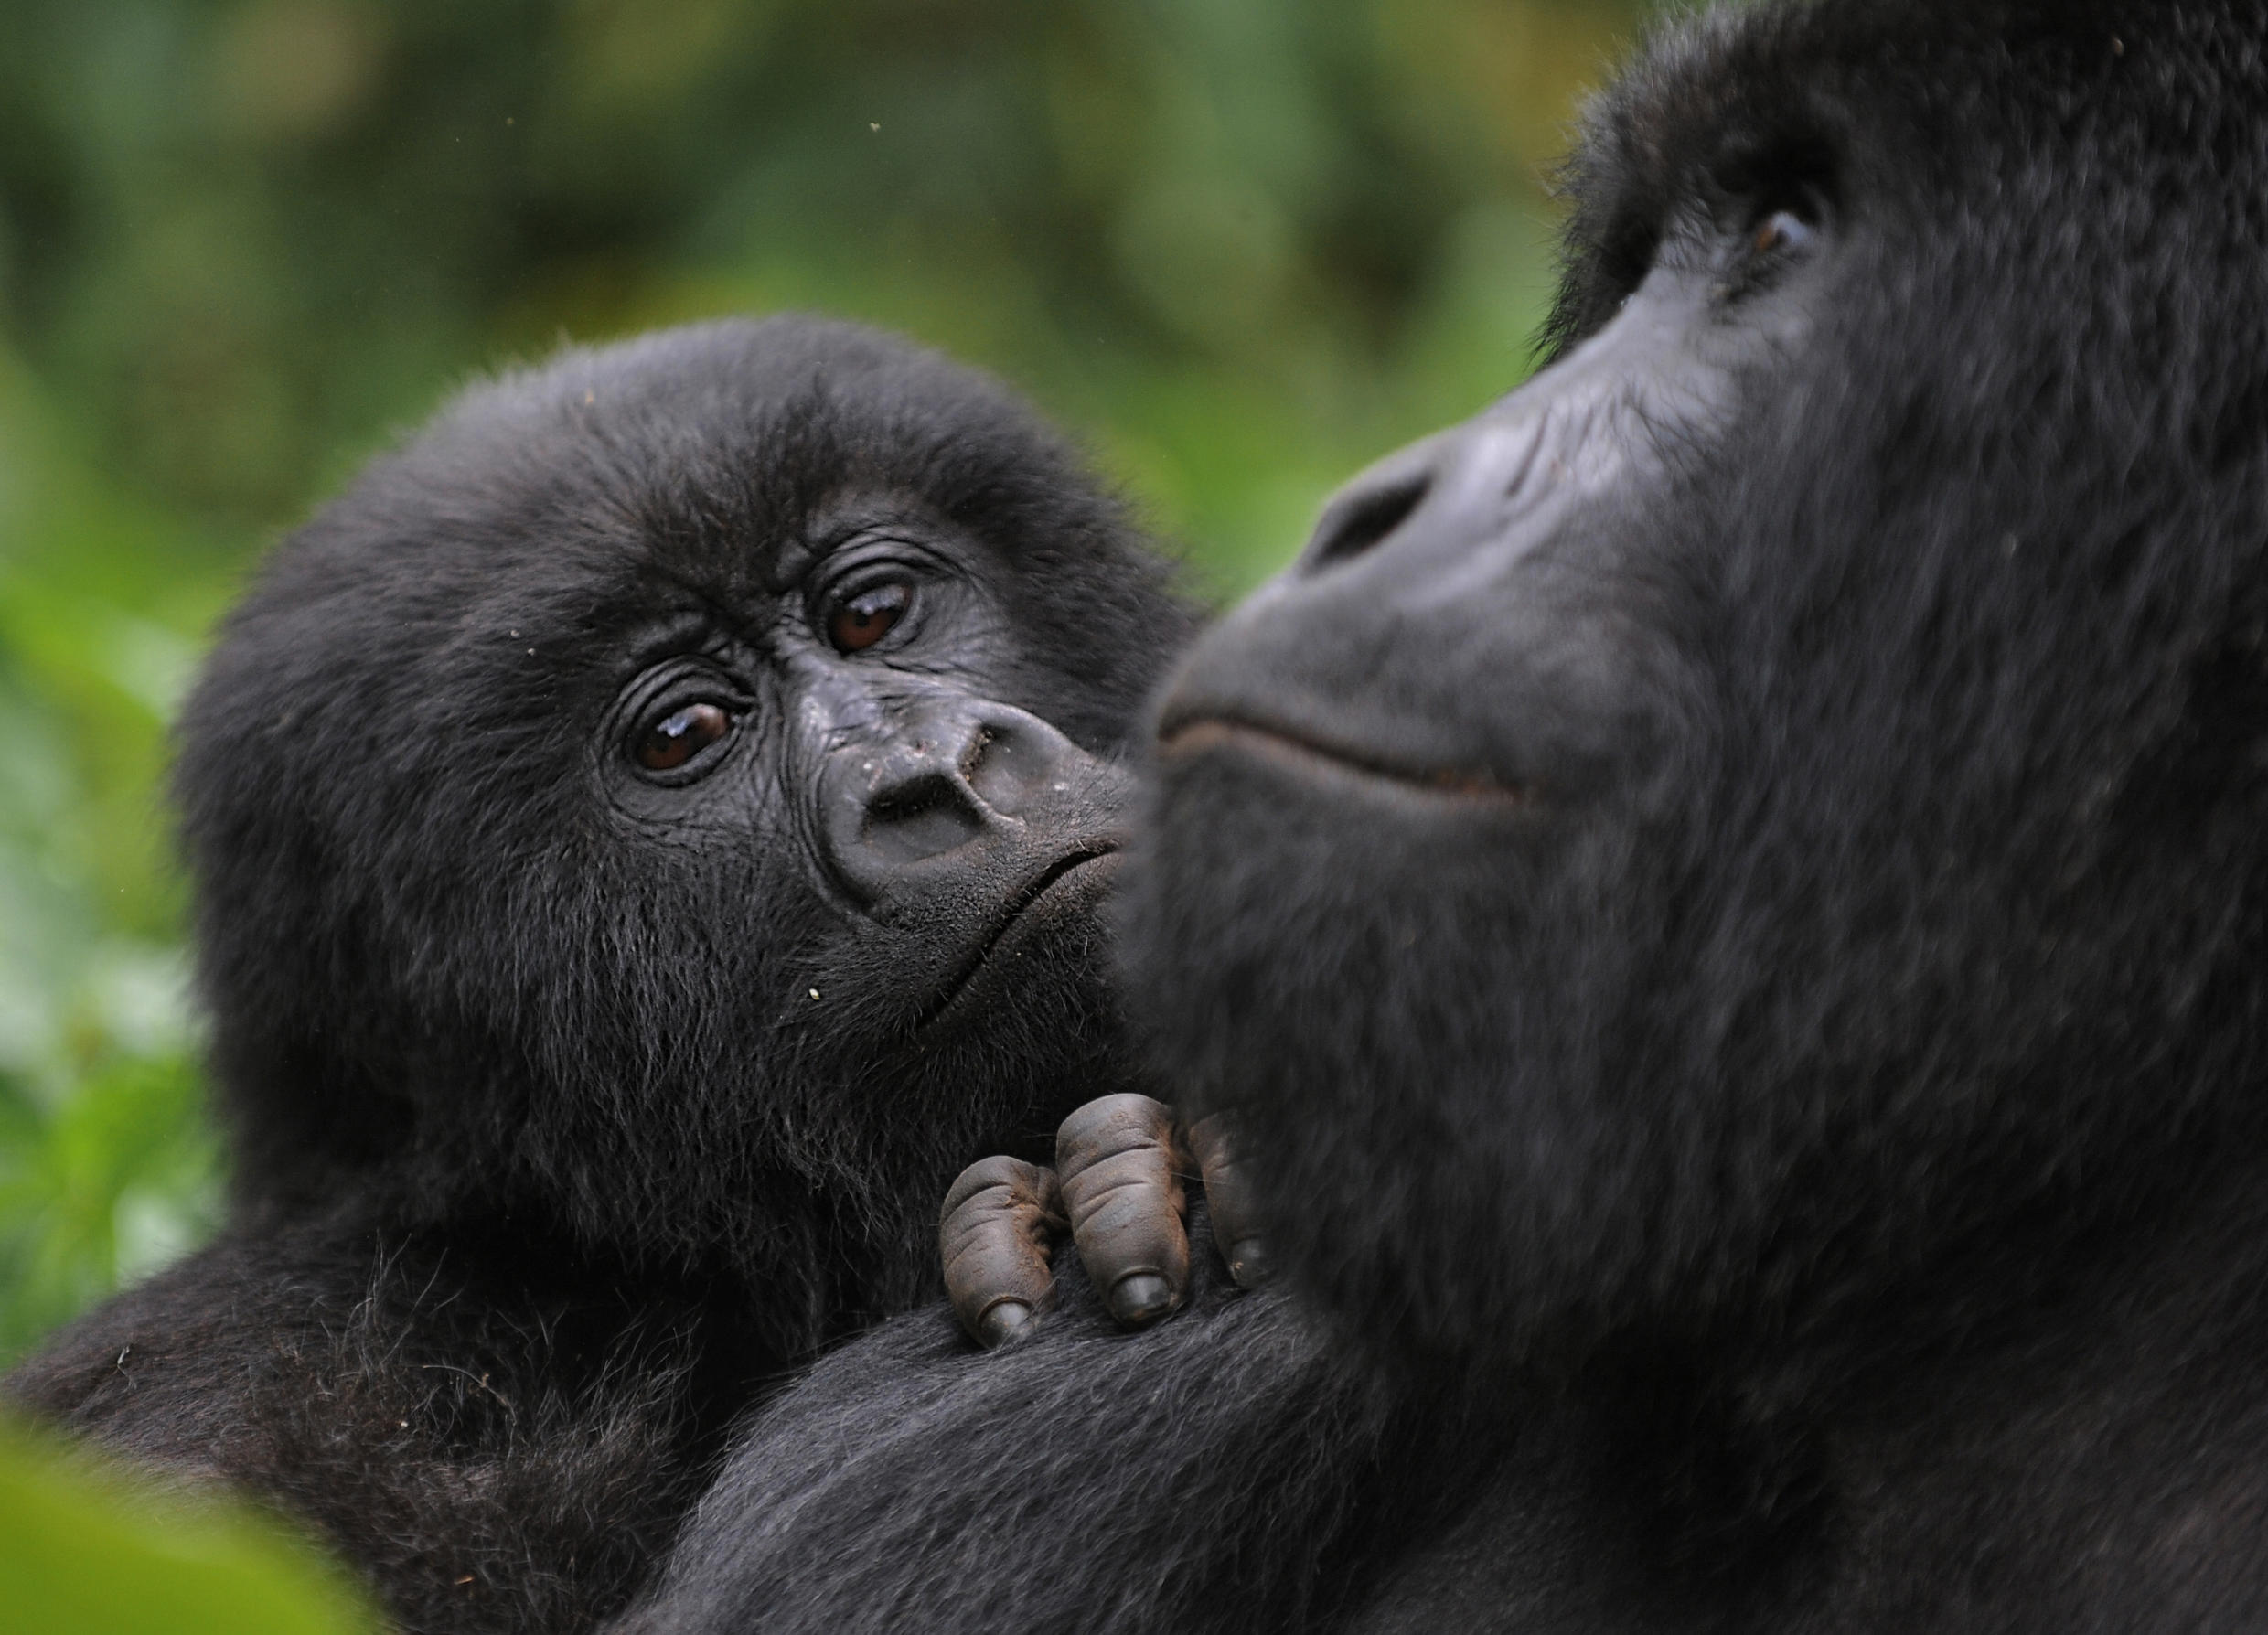 """Thanks to intensive conservation efforts the mountain gorilla's status improved from """"critically endangered"""" to """"endangered"""" in 2018. The picture shows mountain gorillas in the DR Congo's Virunga National Park"""